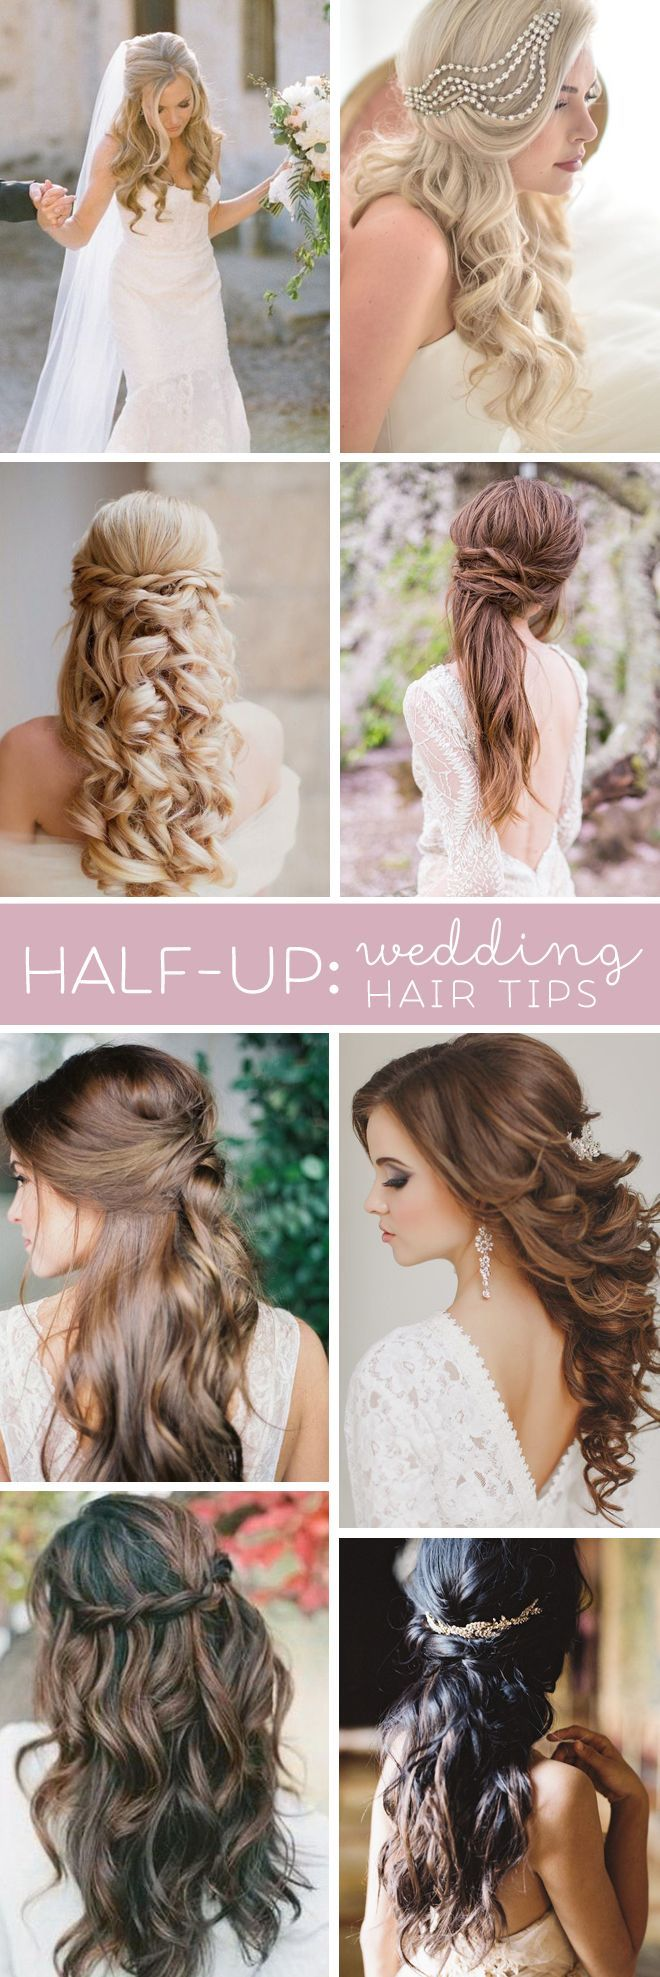 Wedding Hair Tips // Half-up + Half-down Styles | Hair ...